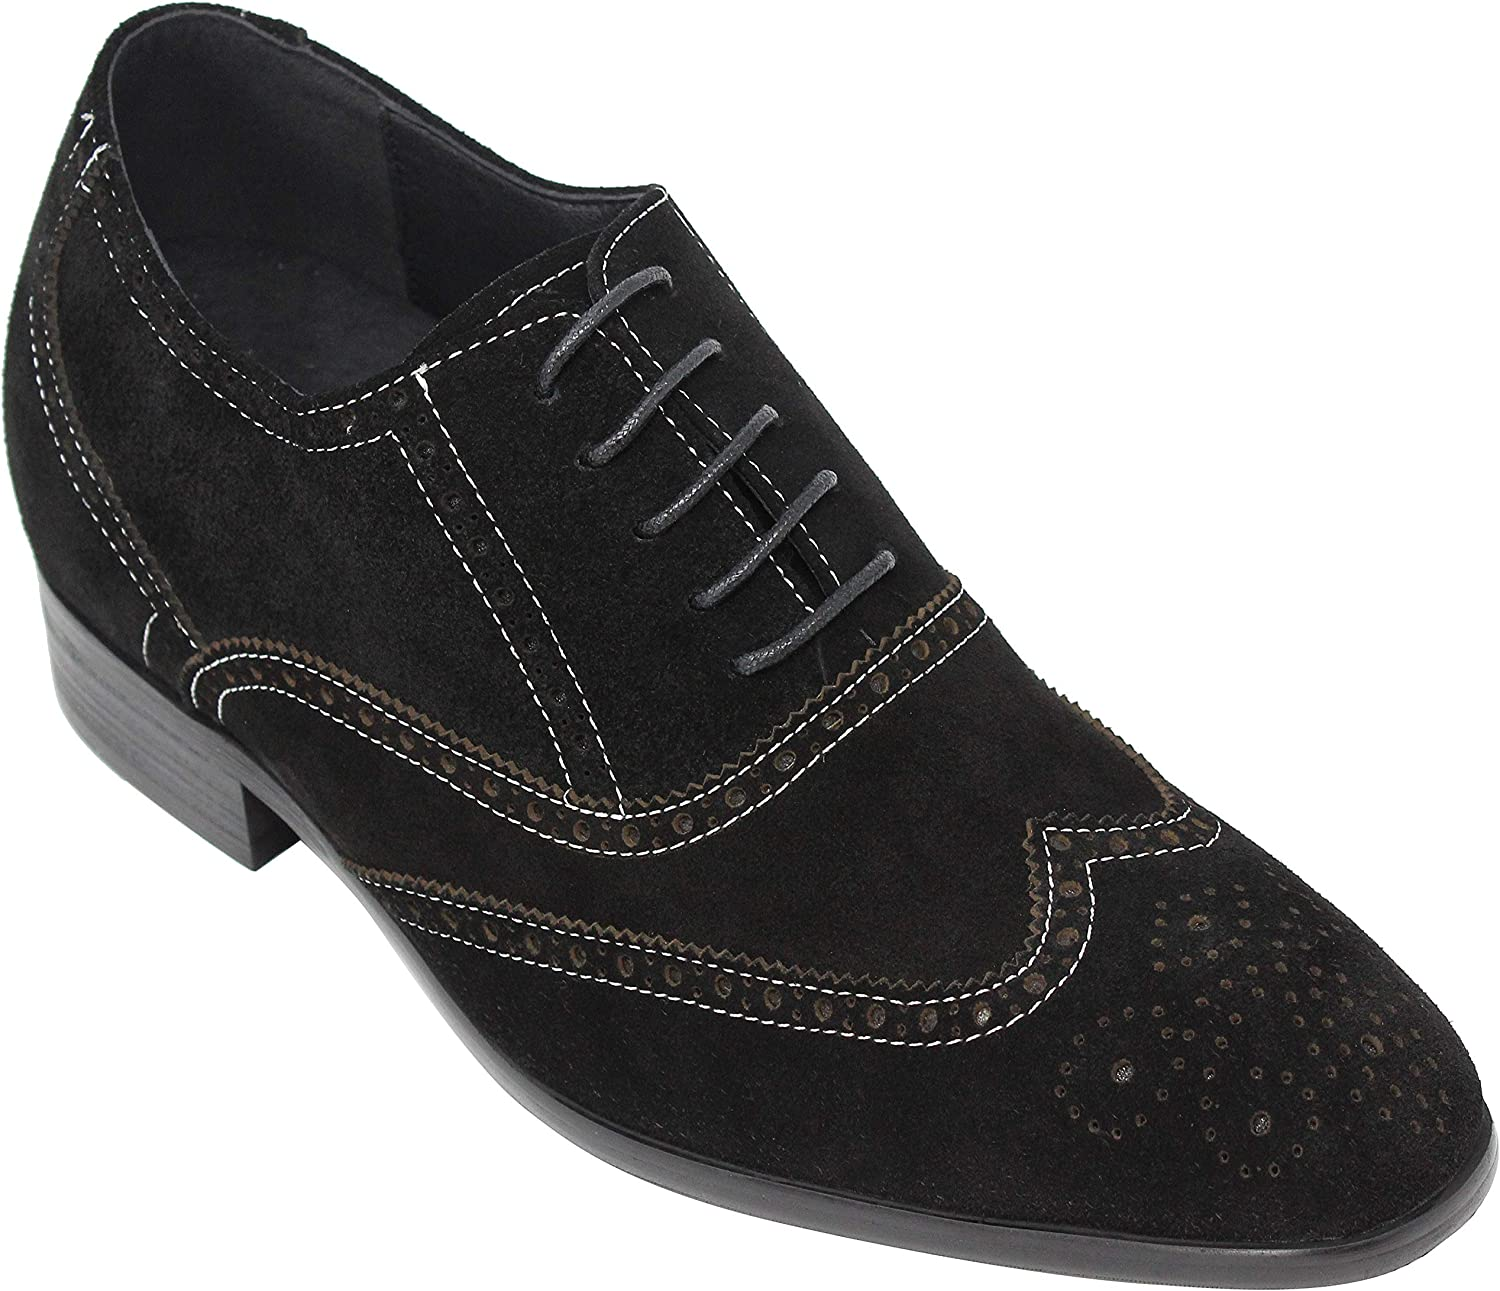 CALTO Men's Invisible Height Increasing Elevator shoes - Black Suede Leather Lace-up Wing-tip Formal Oxfords - Y40011-3.2 Inches Taller